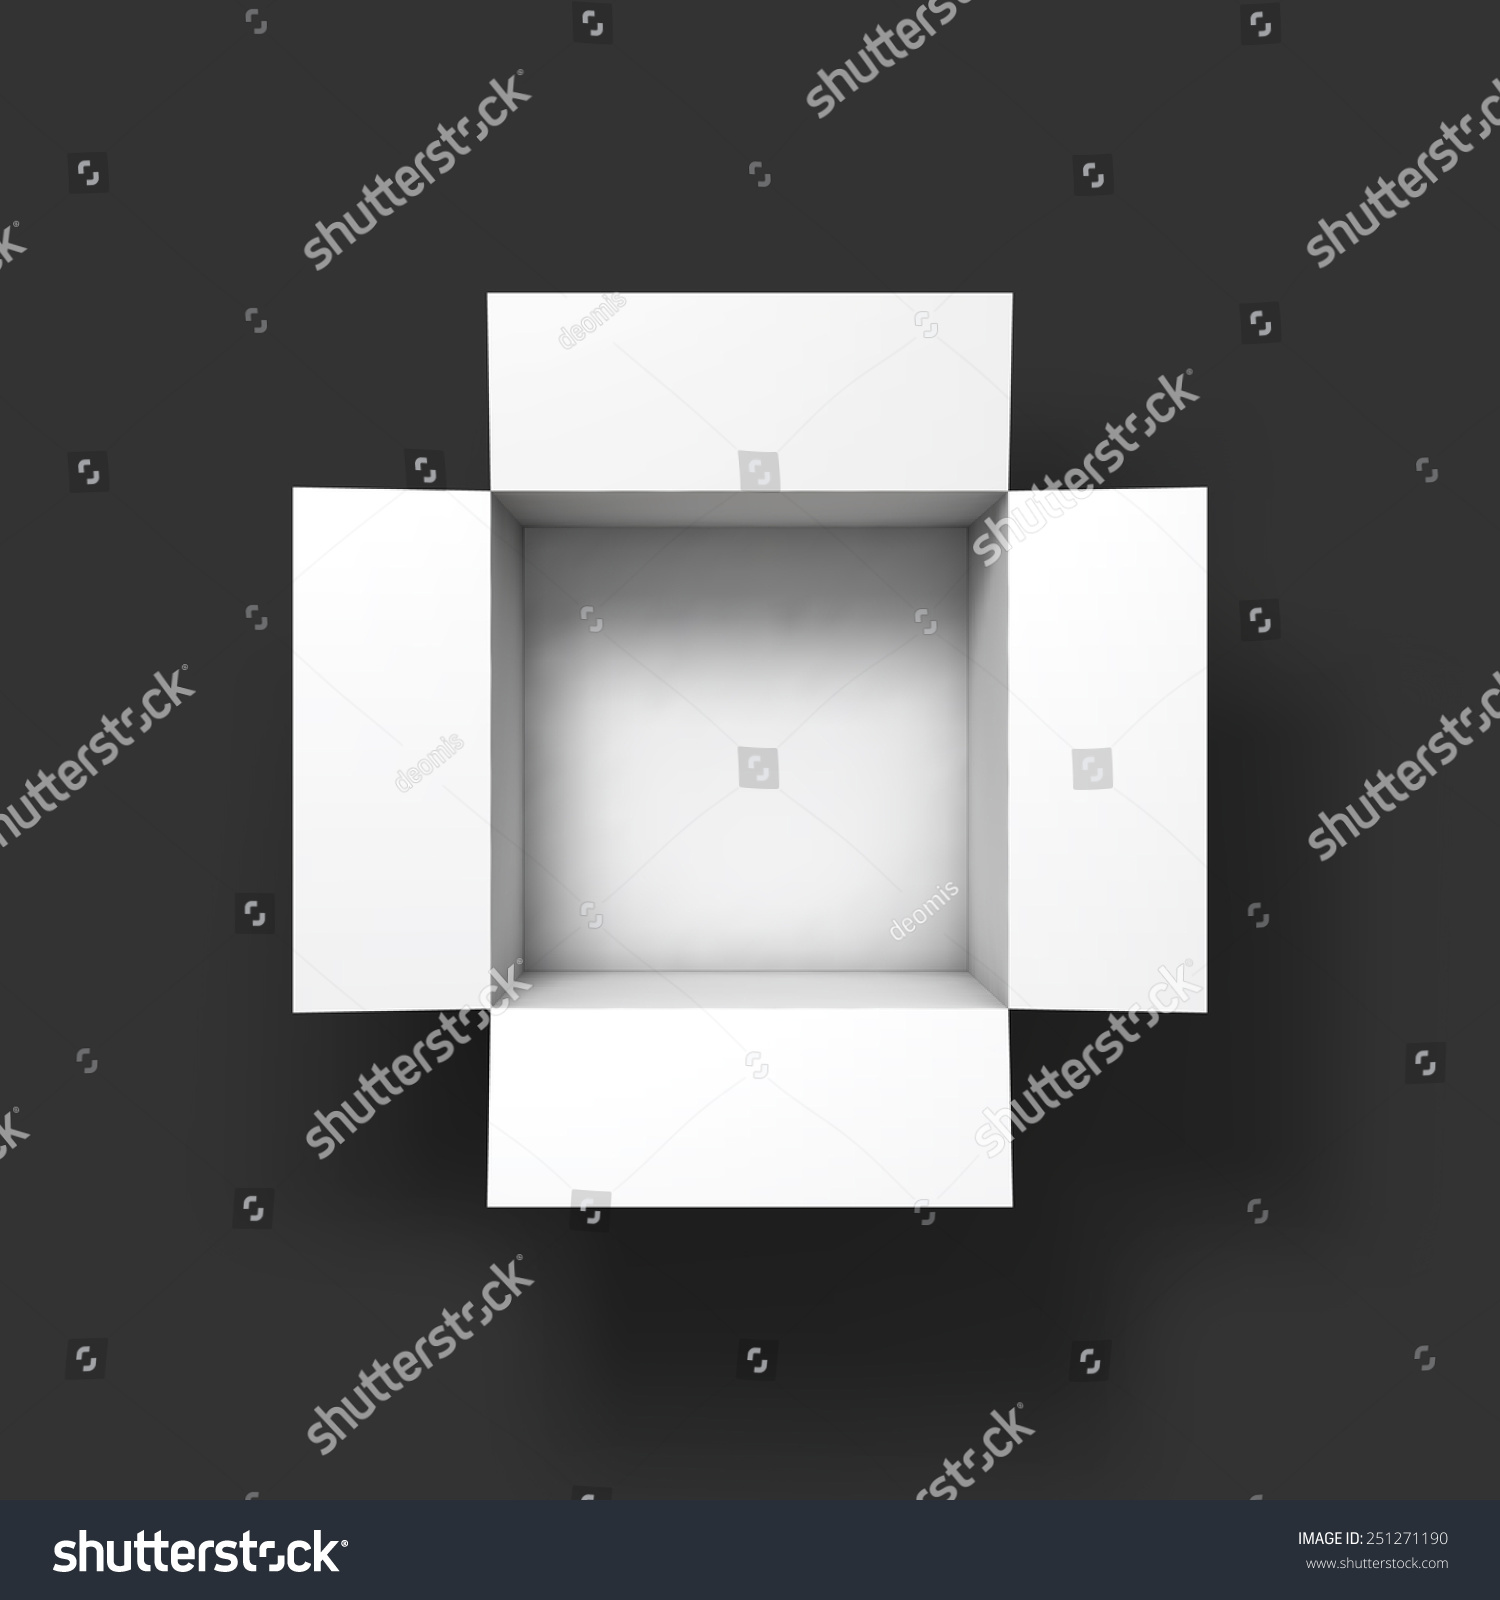 open box mockup template top view vector illustration eps10 251271190 shutterstock. Black Bedroom Furniture Sets. Home Design Ideas